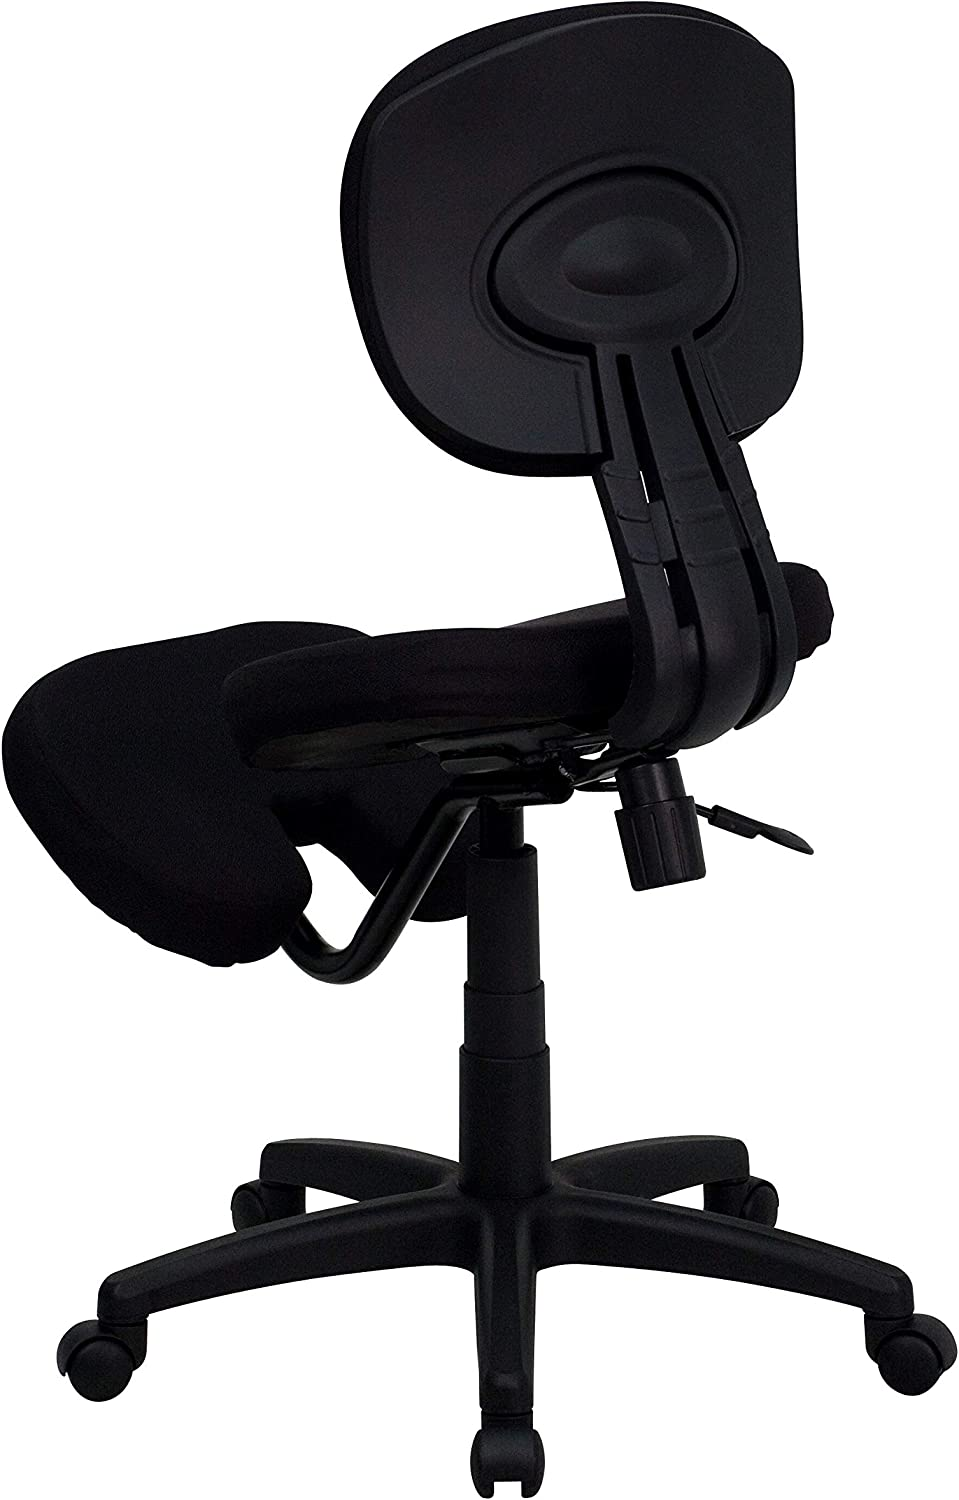 A Line Furniture Black Fabric Mobile Kneeling Posture Office Chair with Padded Seat and Knee Rest